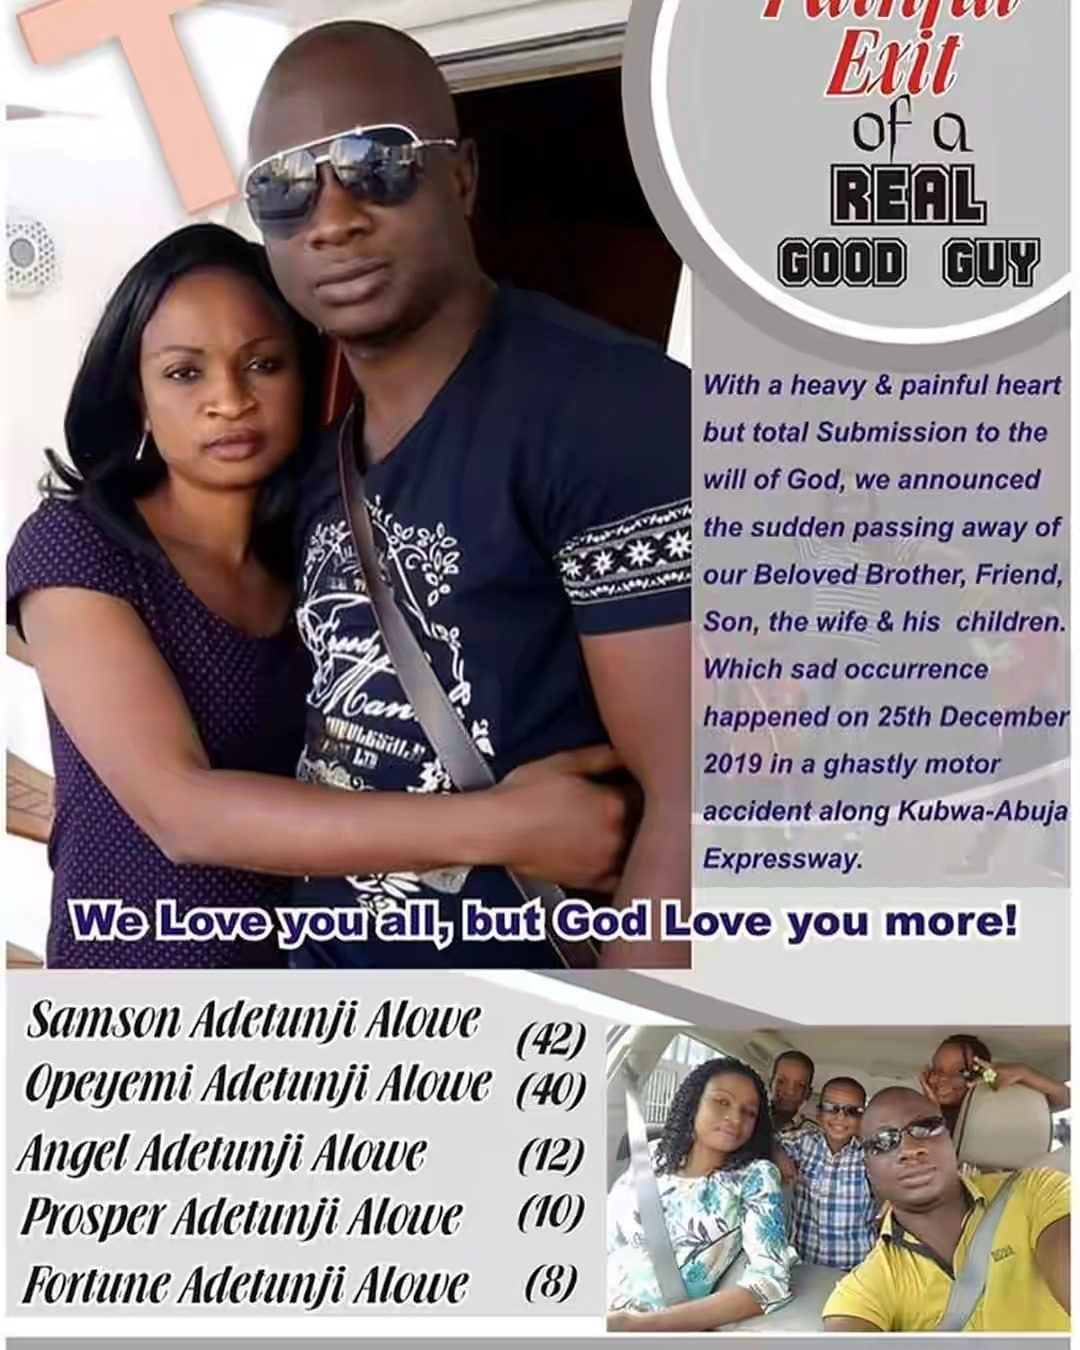 Nigerian Man, His Wife And 3 Children Dies On Tragic Road Accident On Christmas Day 2